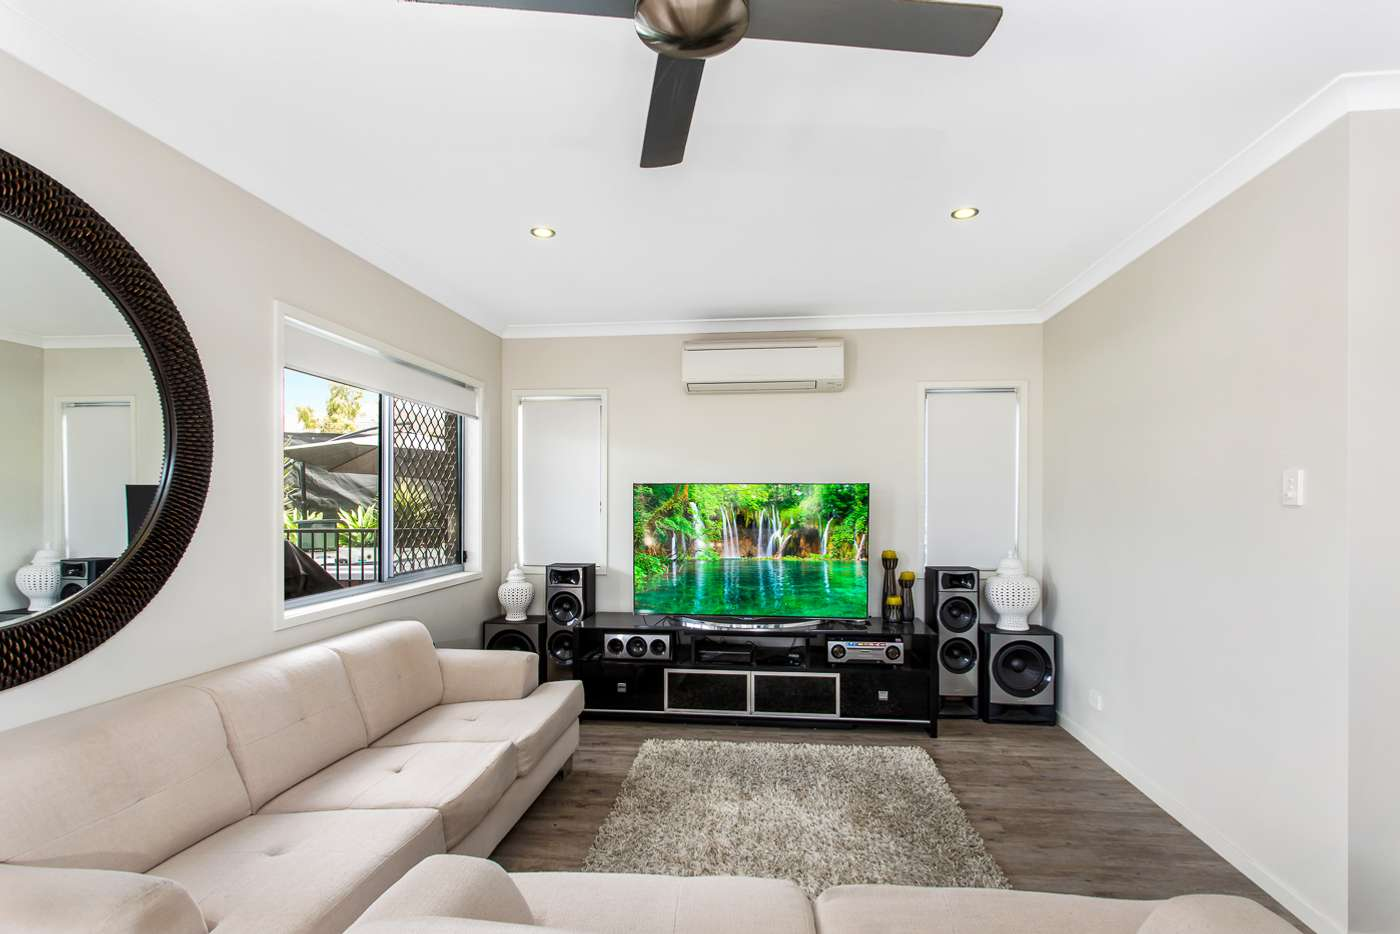 Sixth view of Homely house listing, 31 Serene Crescent, Springfield Lakes QLD 4300